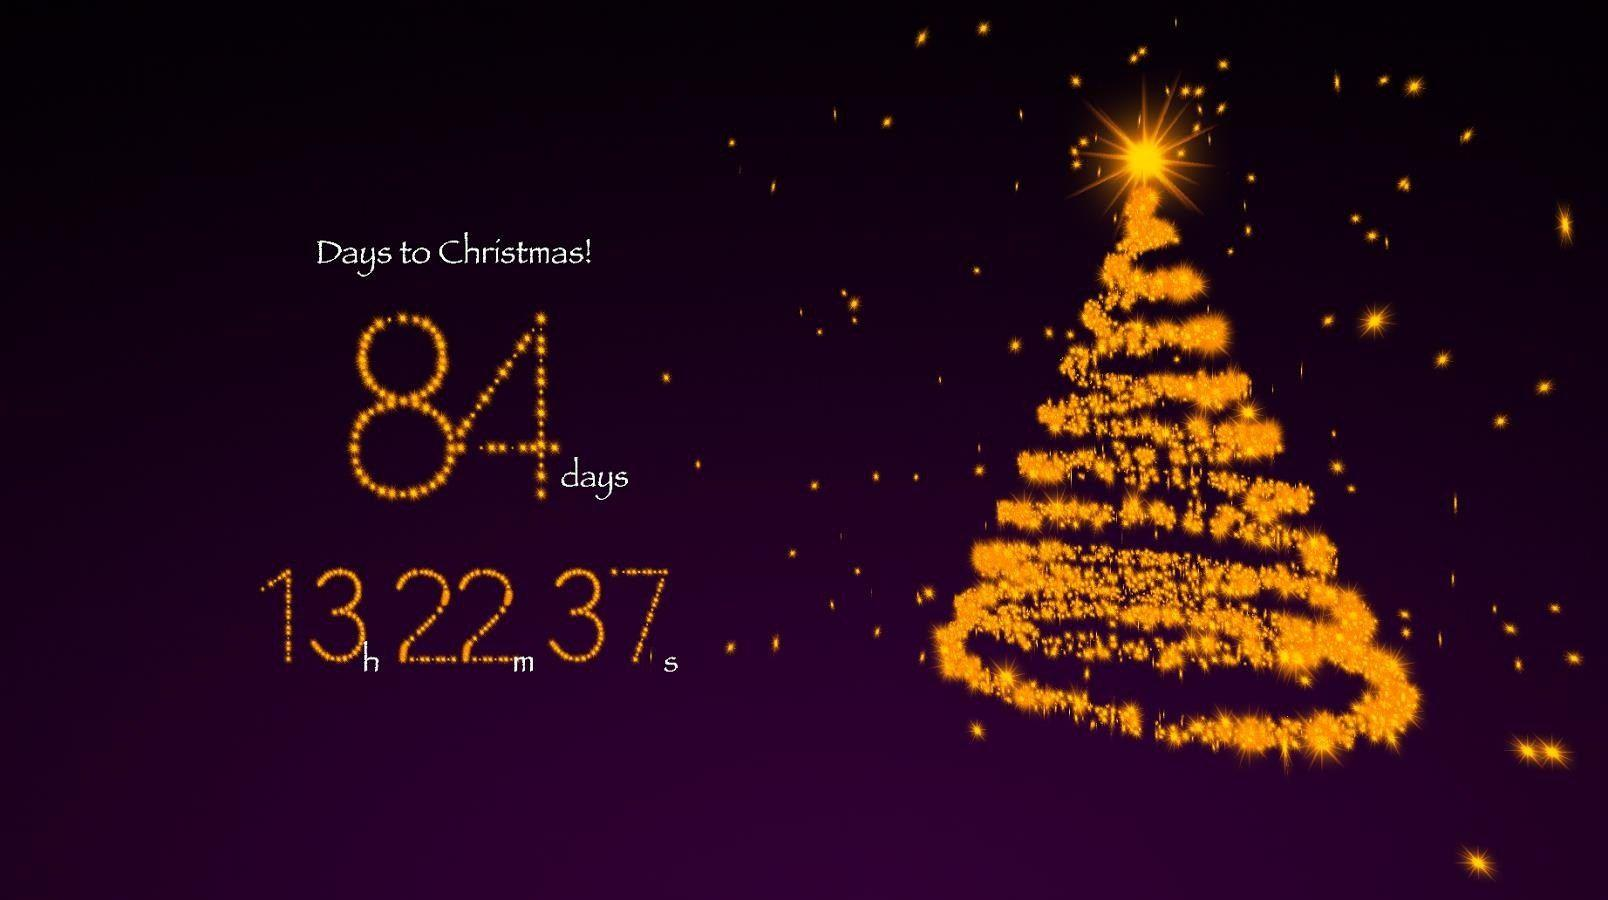 christmas countdown for facebook christmas decore intended for .